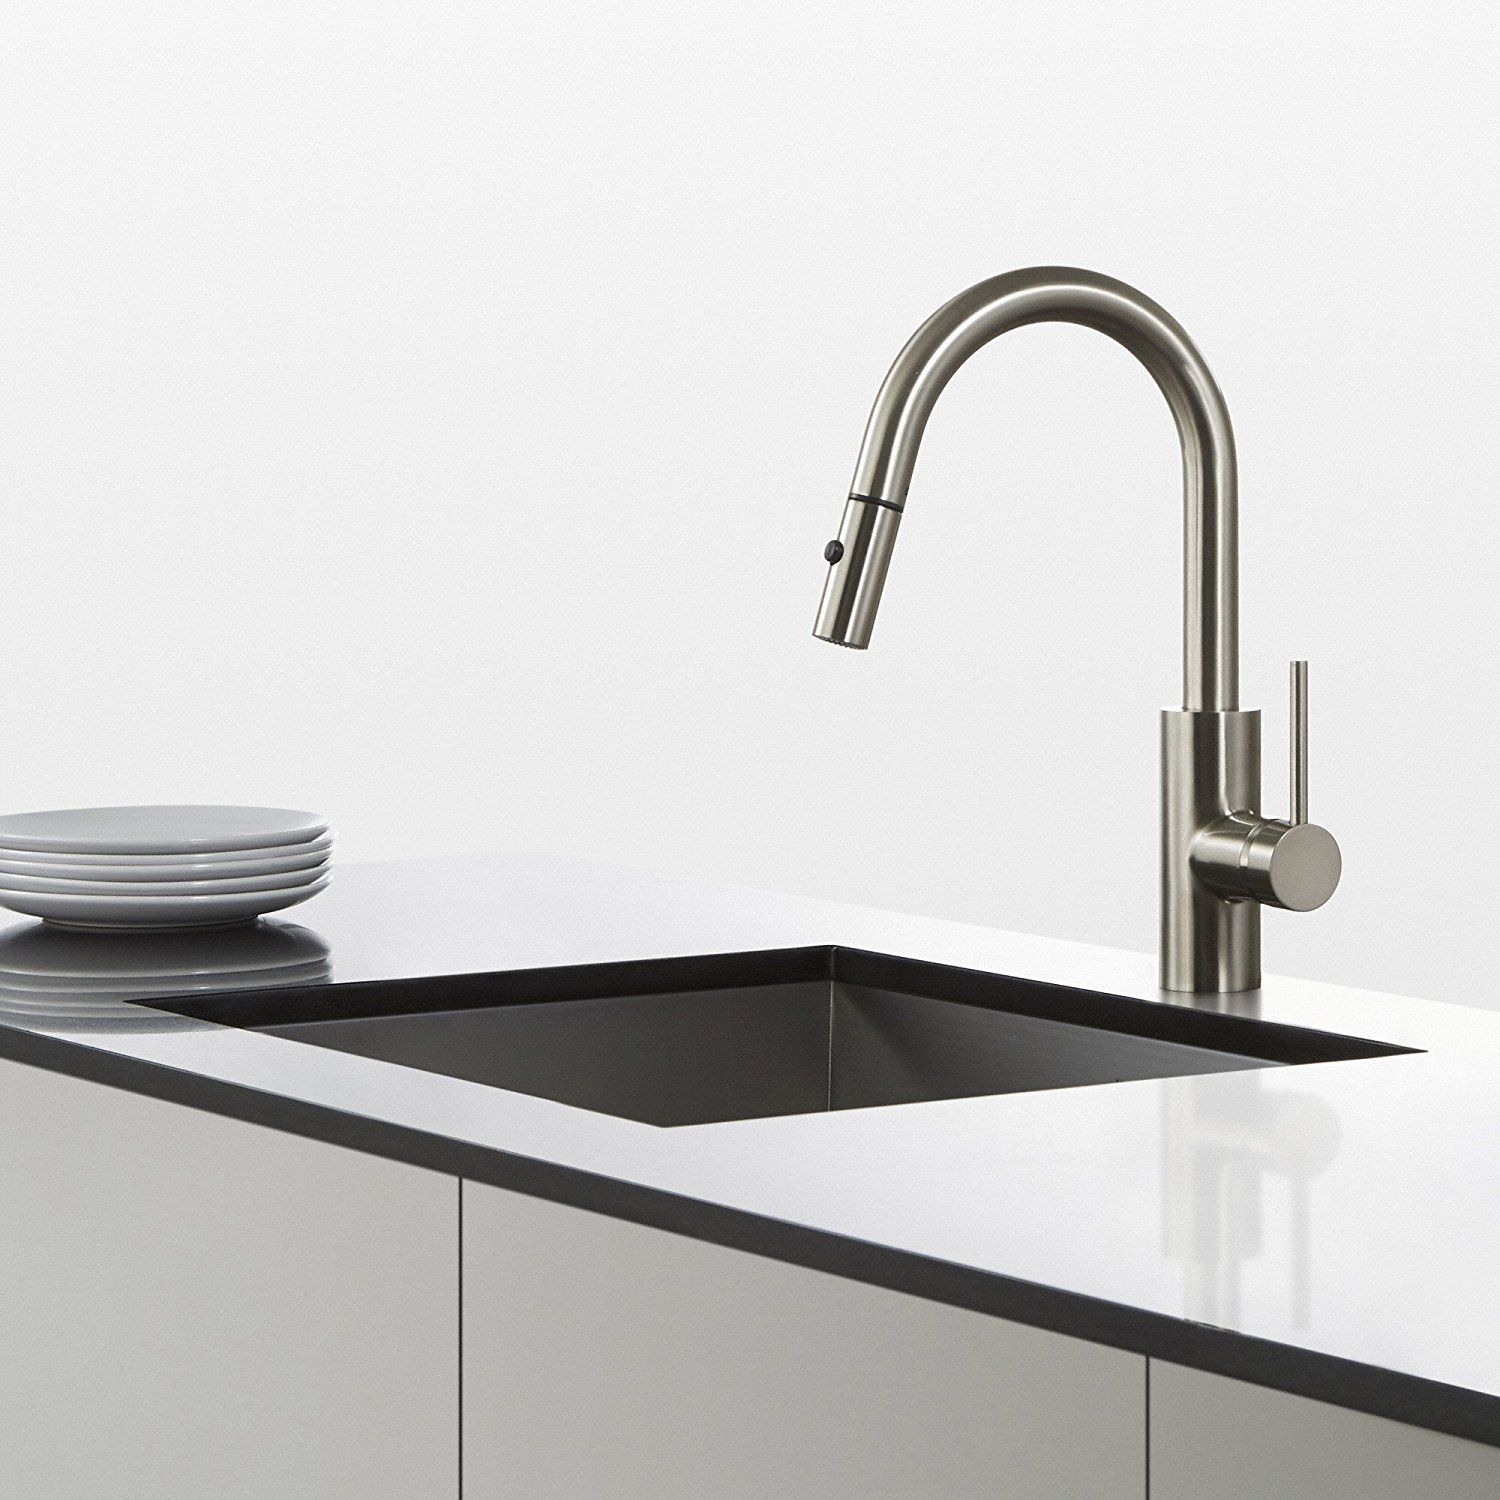 Kraus oletto single handle pull down kitchen faucet with dual function sprayer in stainless steel at the home depot mobile